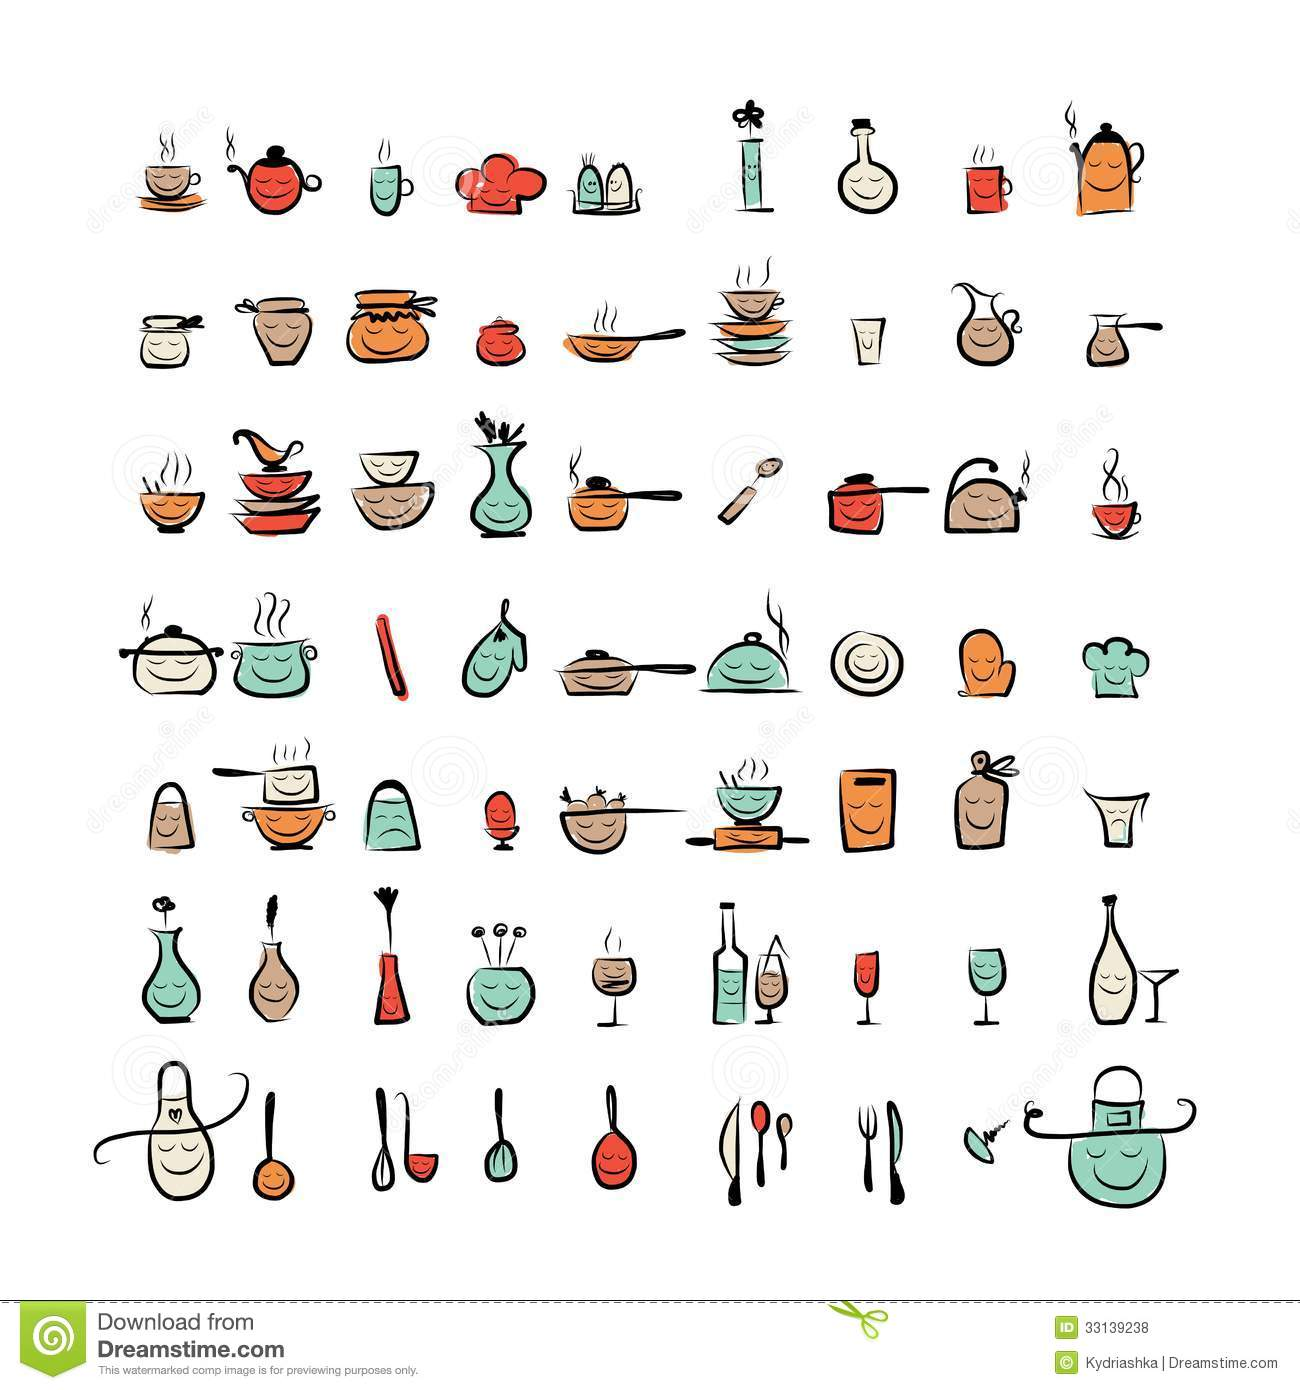 Kitchen utensils characters sketch drawing icons royalty for Ustensile cuisine design